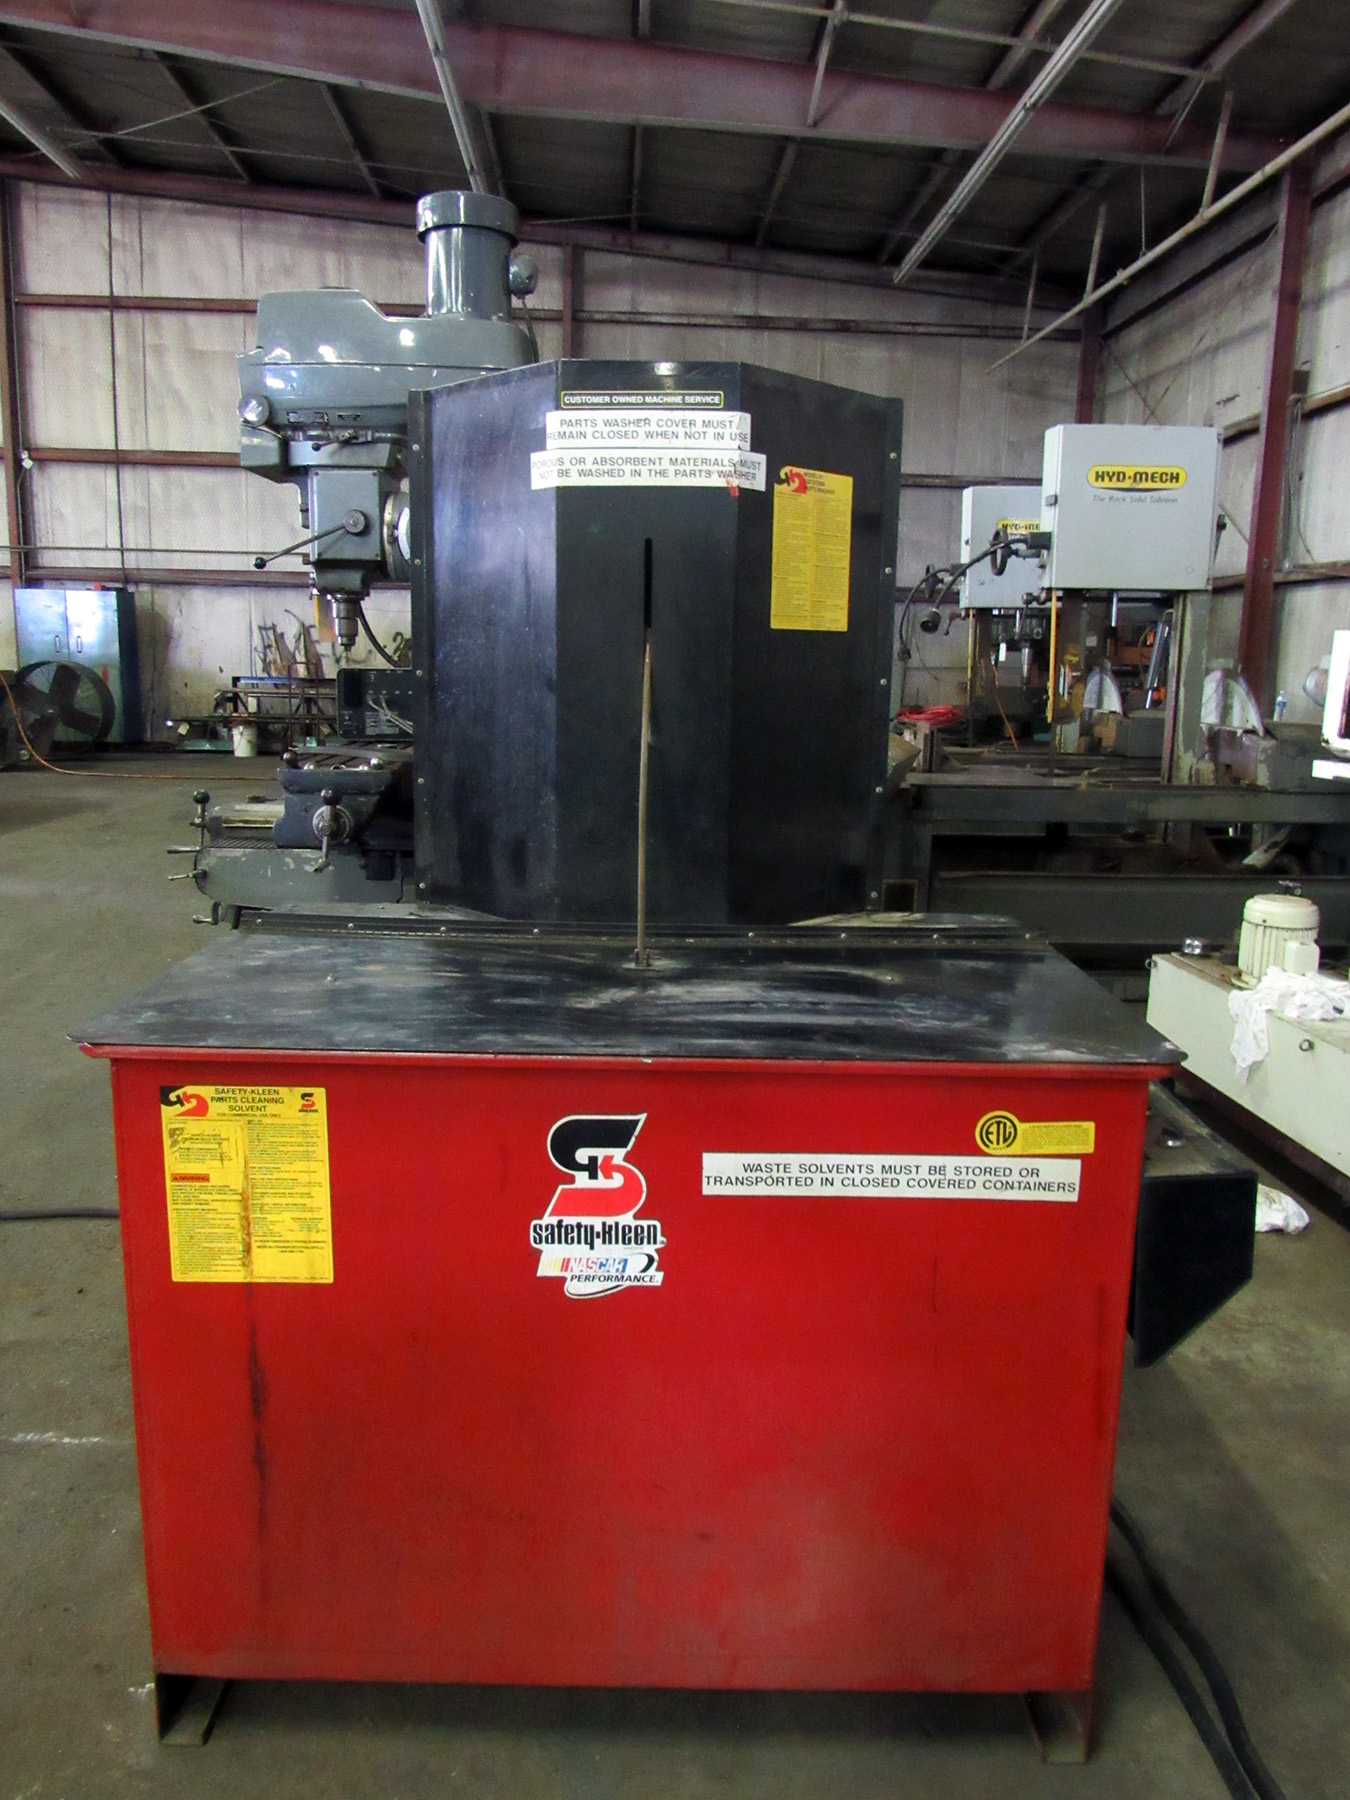 USED, SAFETY-KLEEN MODEL 81 SOLVENT AGITATING PARTS WASHER